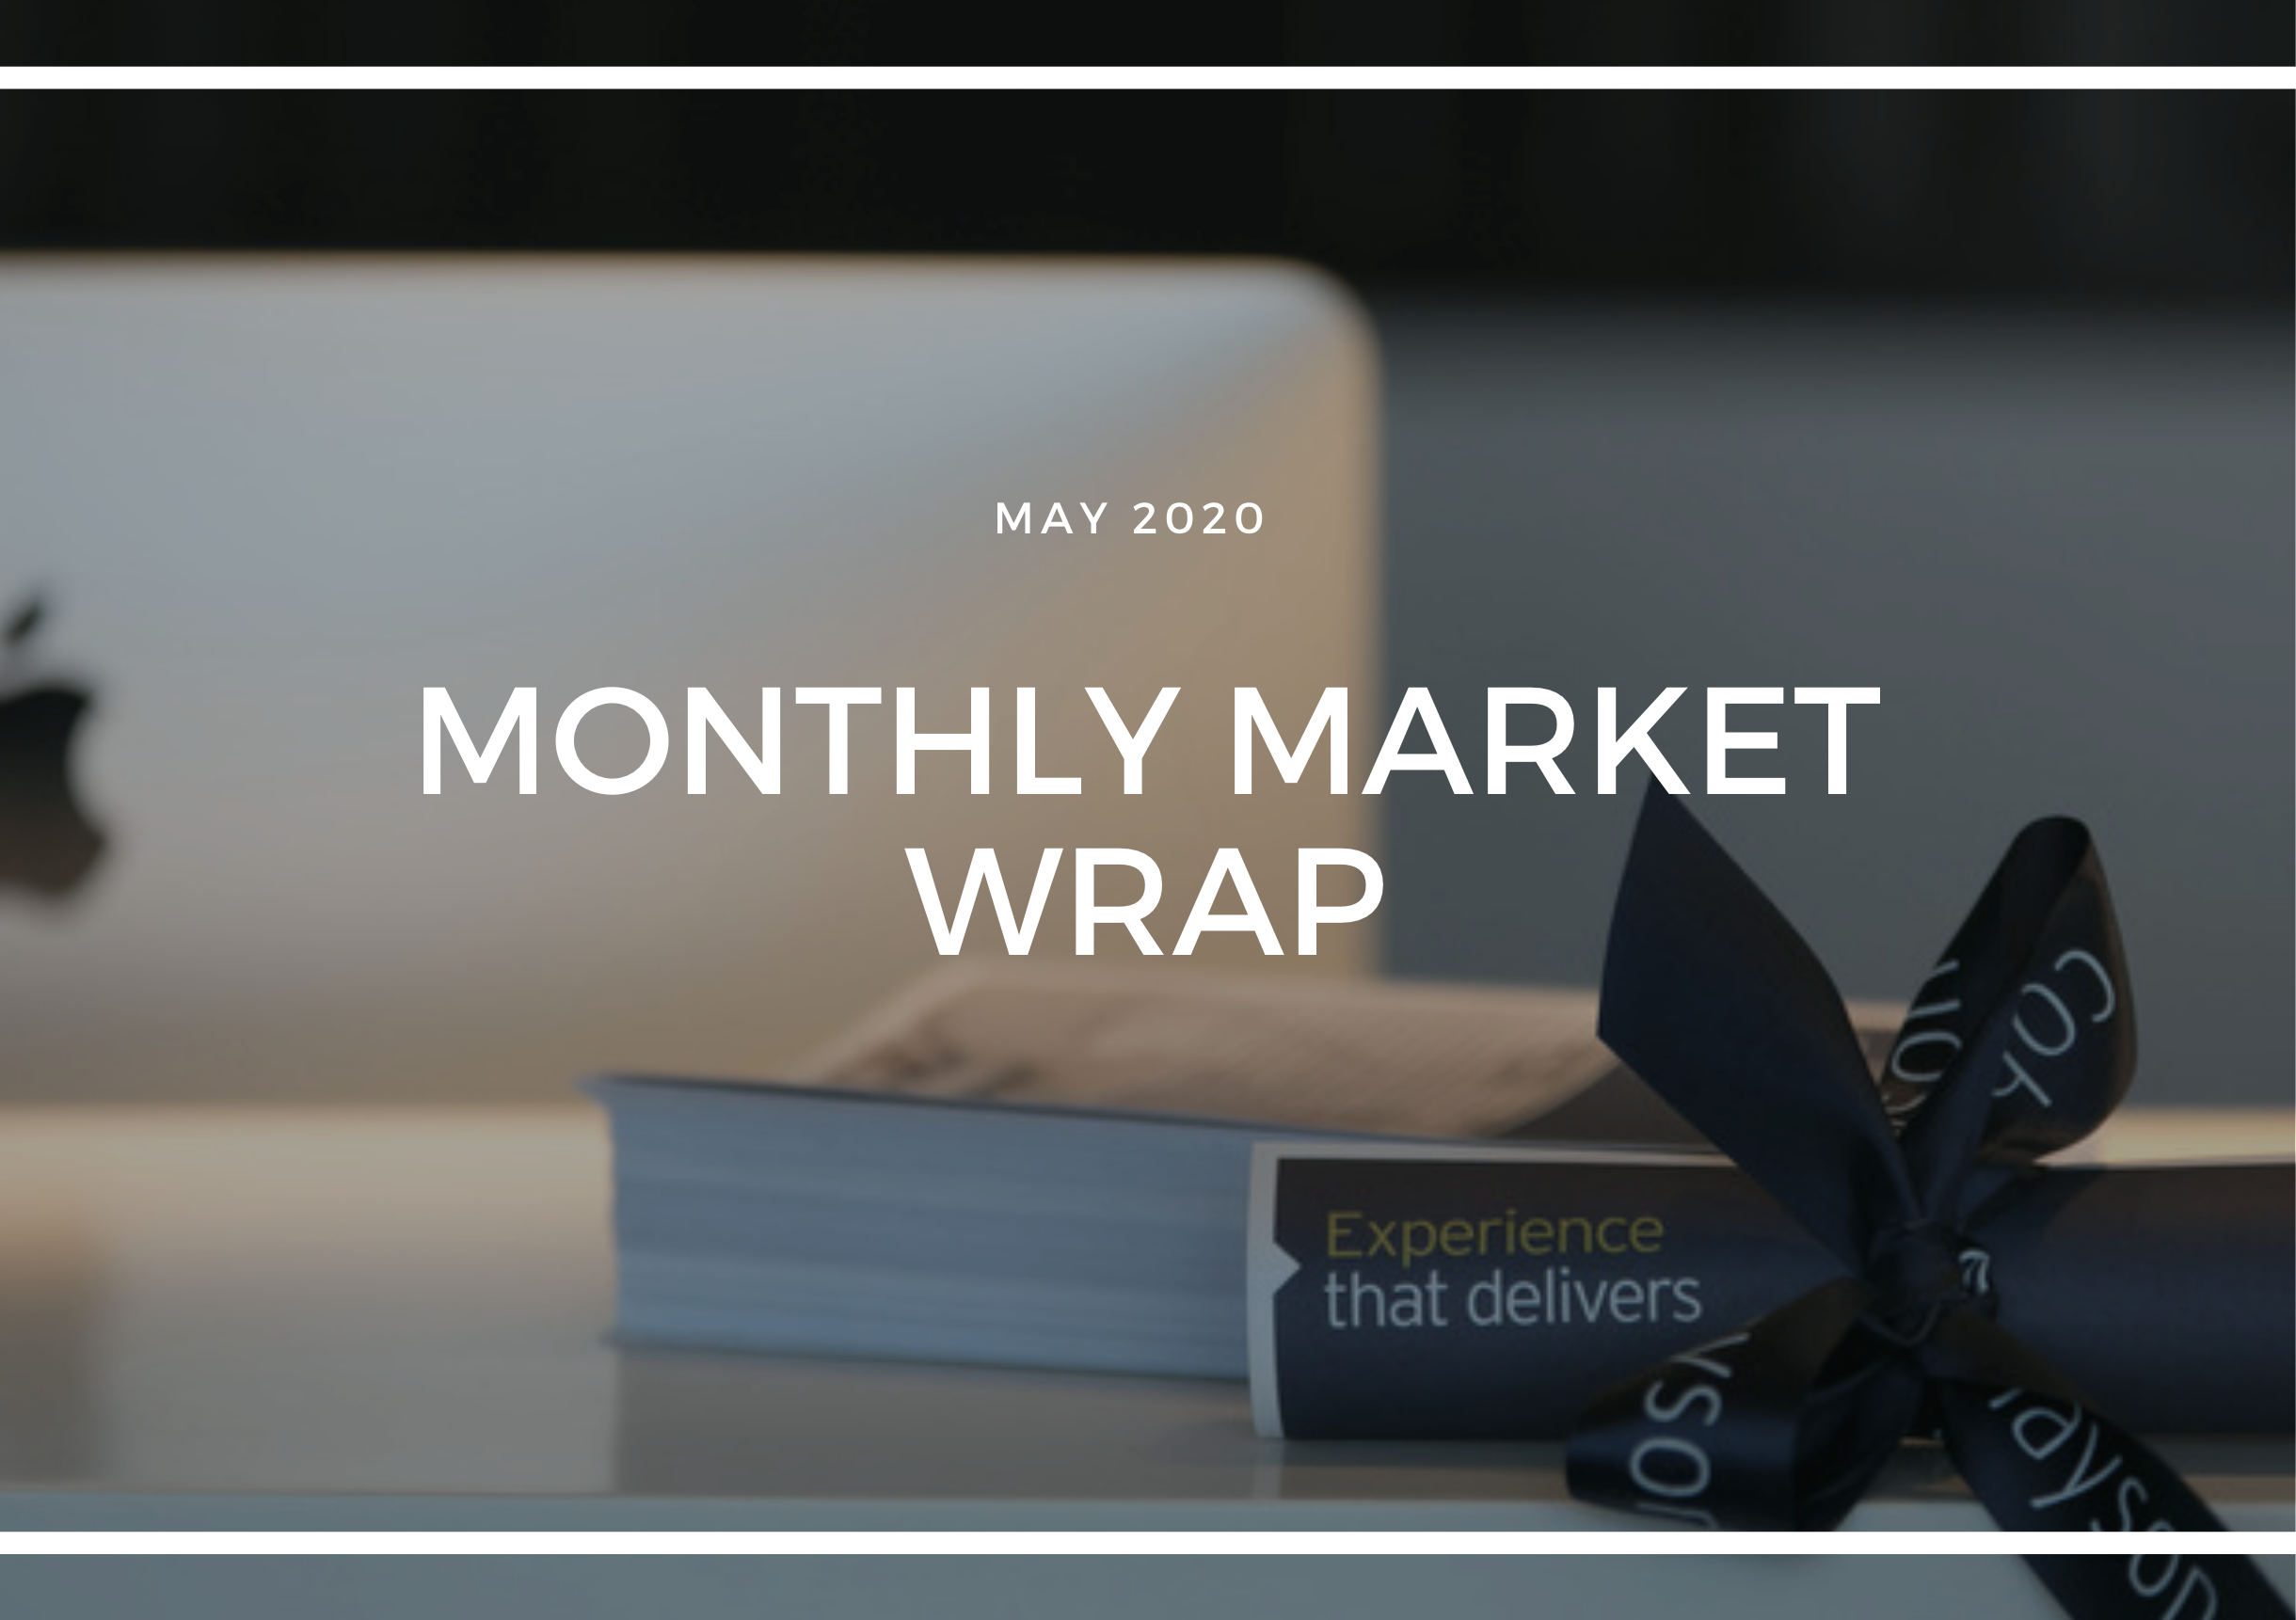 MONTHLY MARKET WRAP - MAY 2020